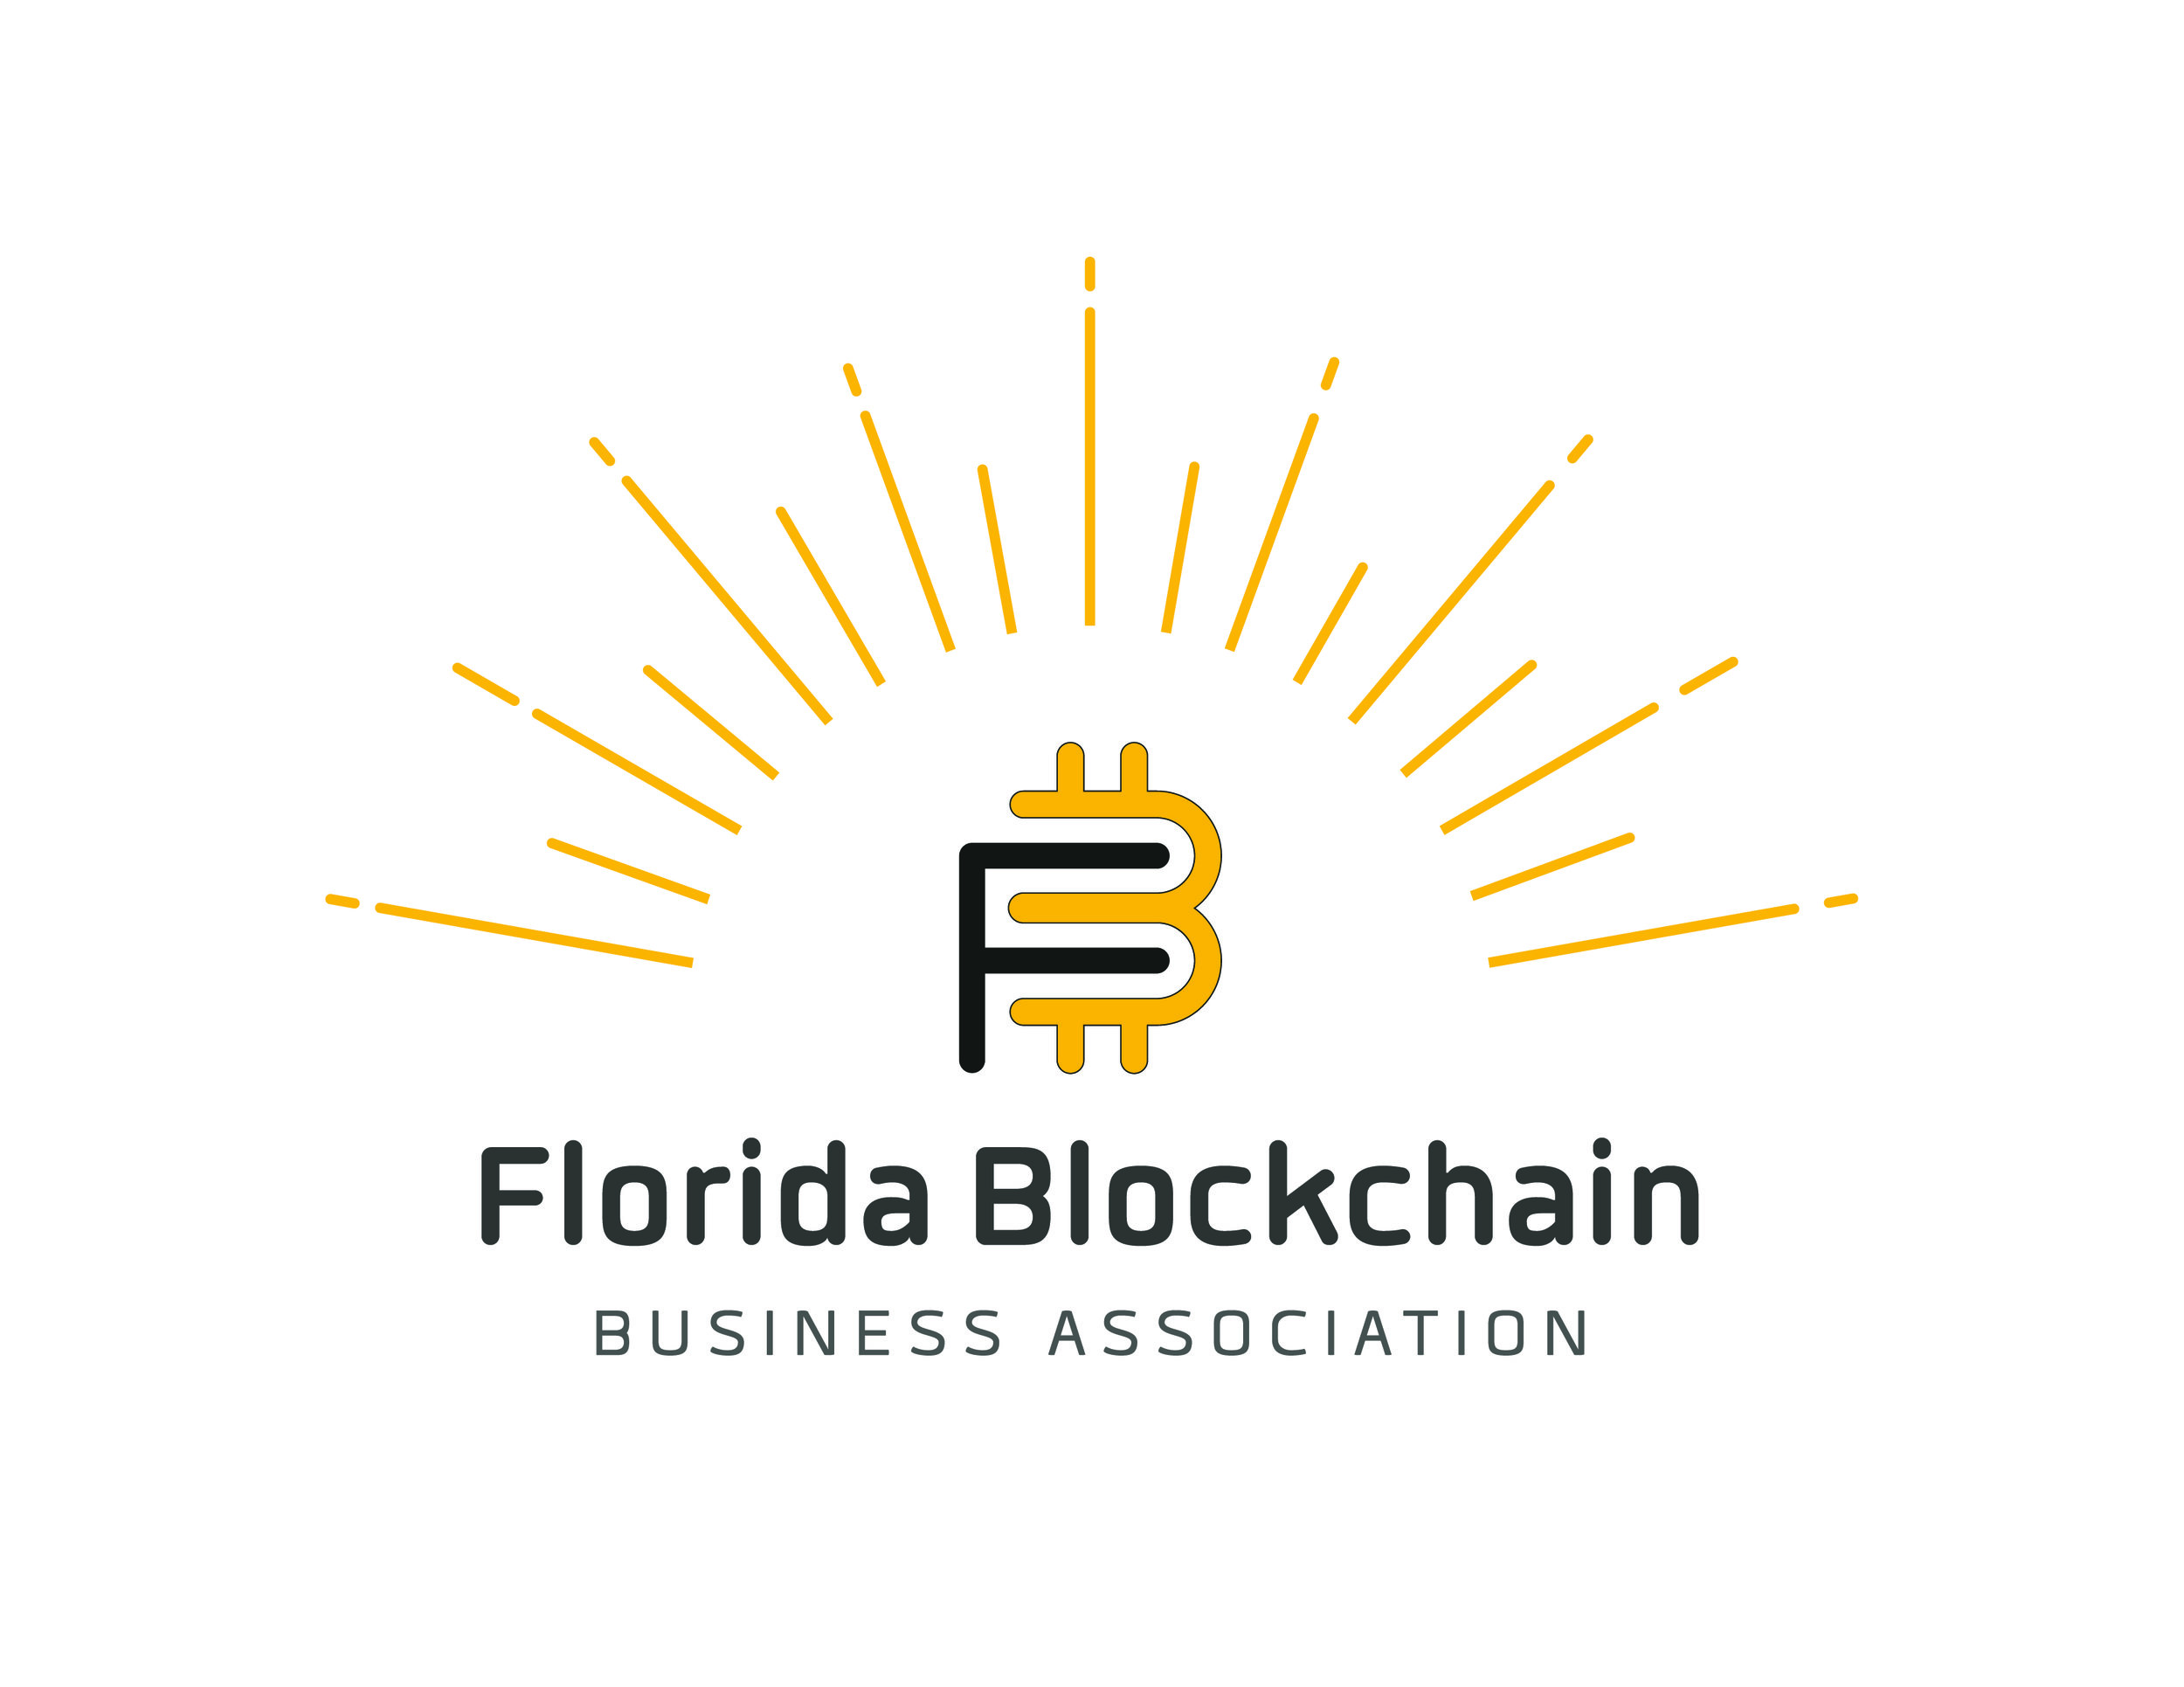 Florida Blockchain Business Association_FF_02.jpg